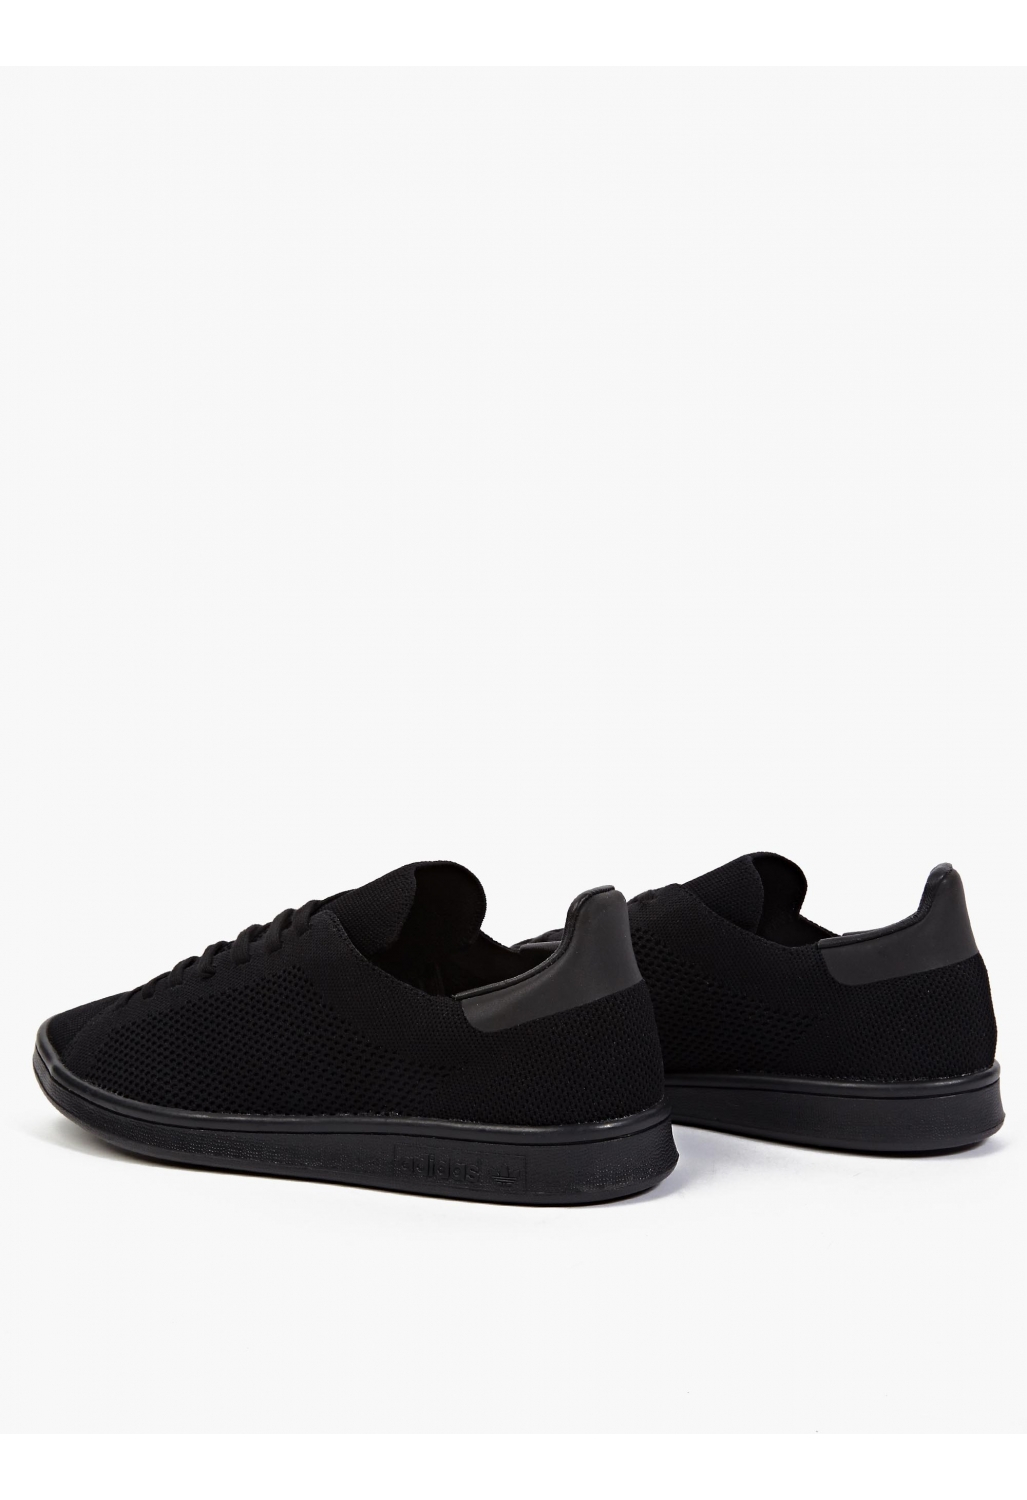 Adidas Stan Smith All Black Suede